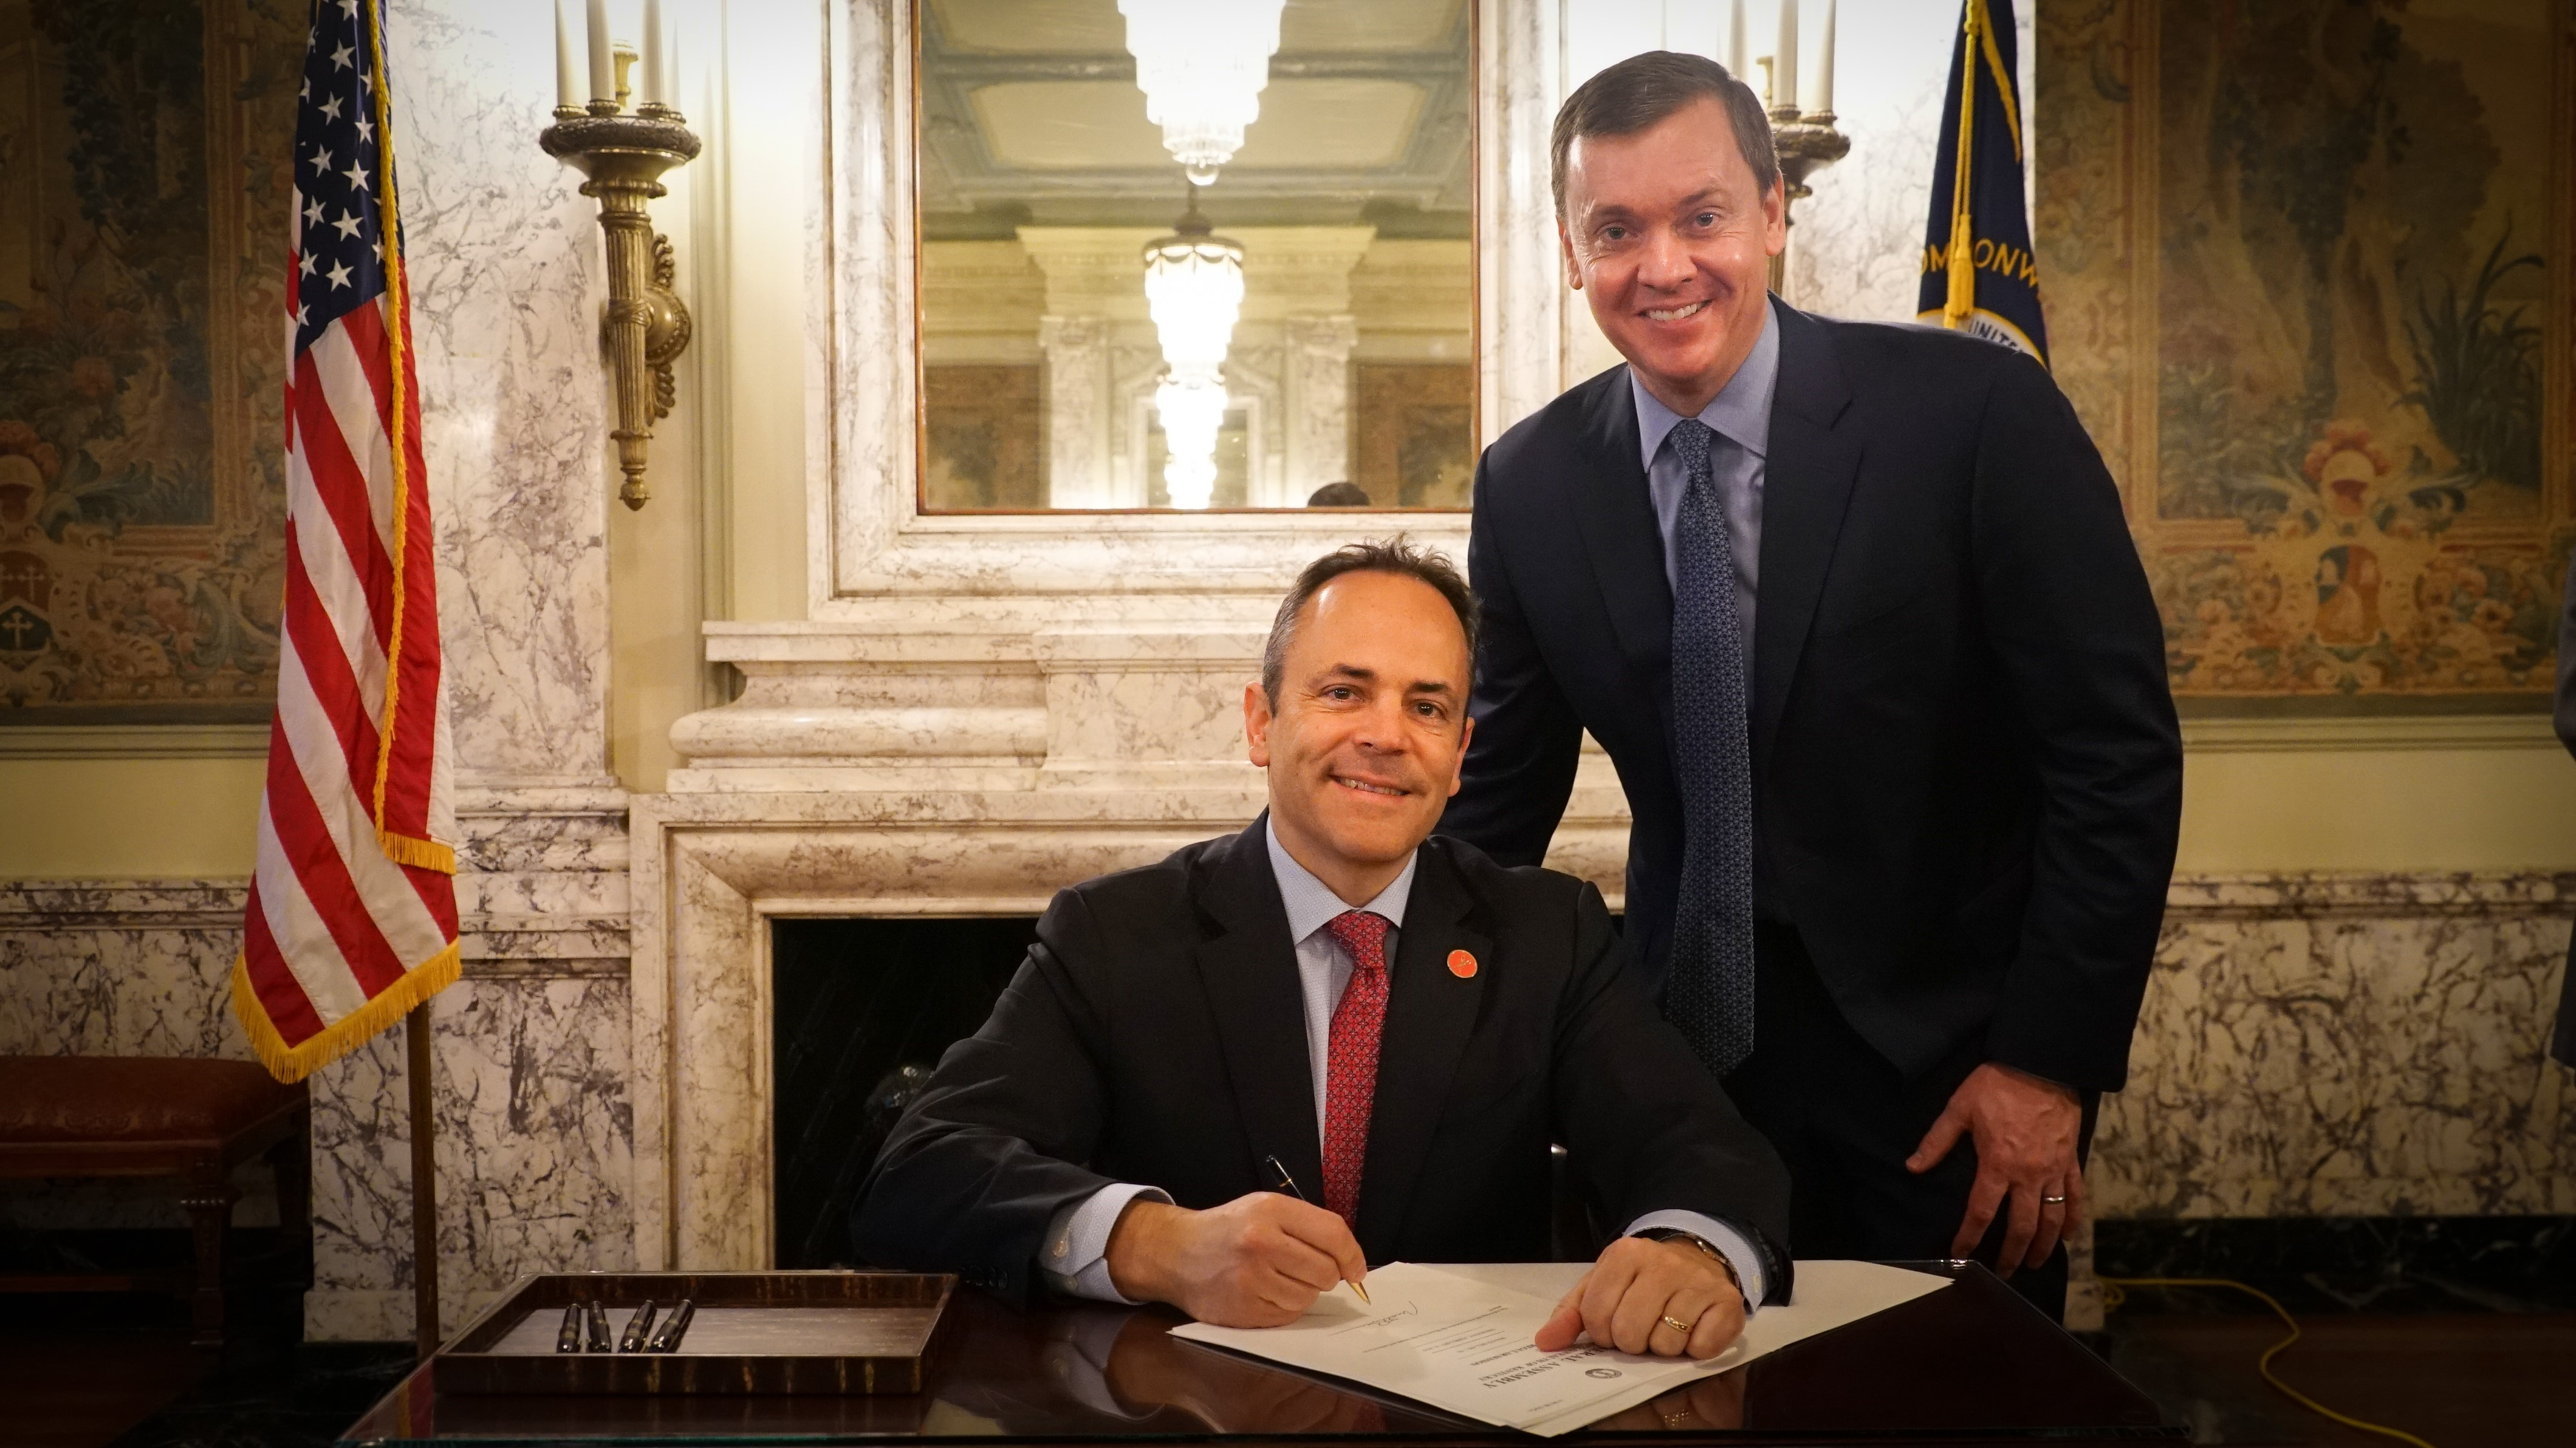 NRA-ILA Executive Director Chris Cox Meets with Governor Bevin in Kentucky